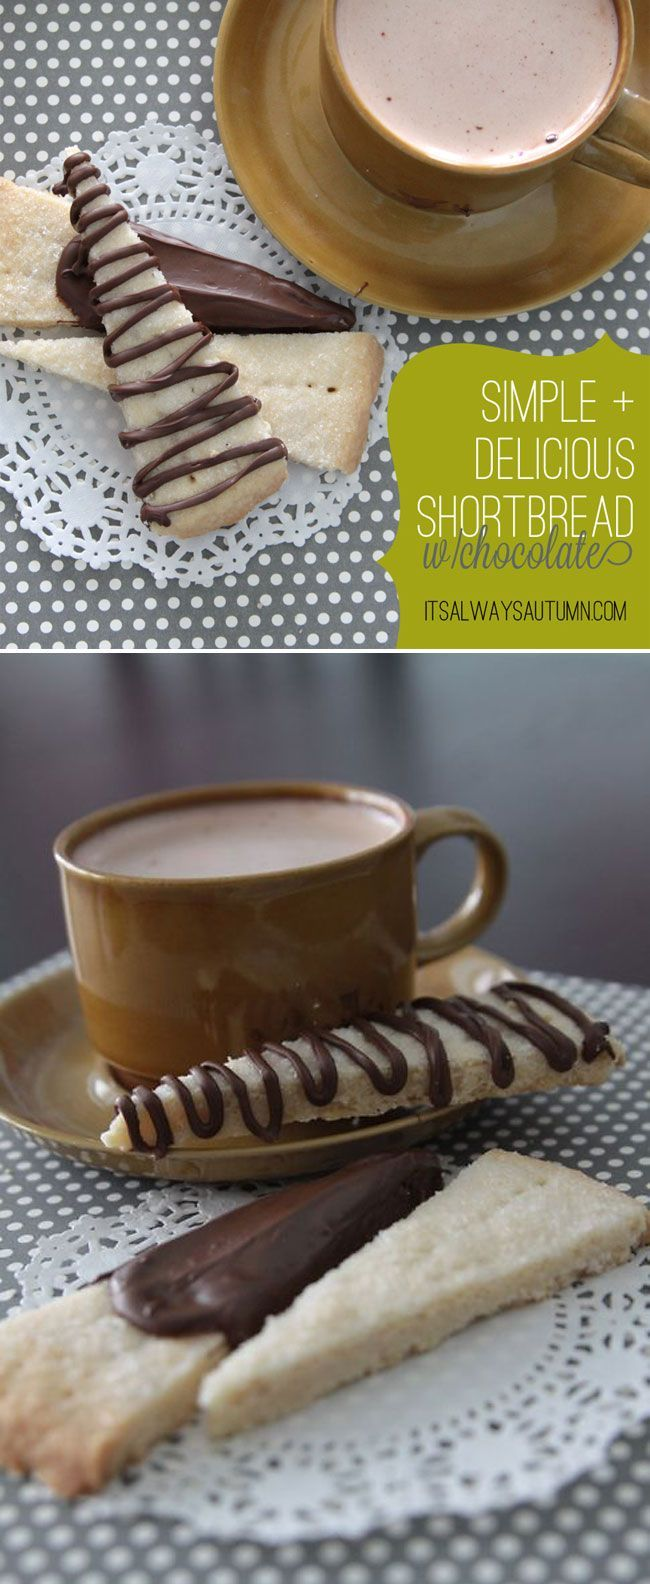 Best ever easy shortbread cookie recipe. I love shortbread desserts in the fall with a cup of my favorite hot tea!